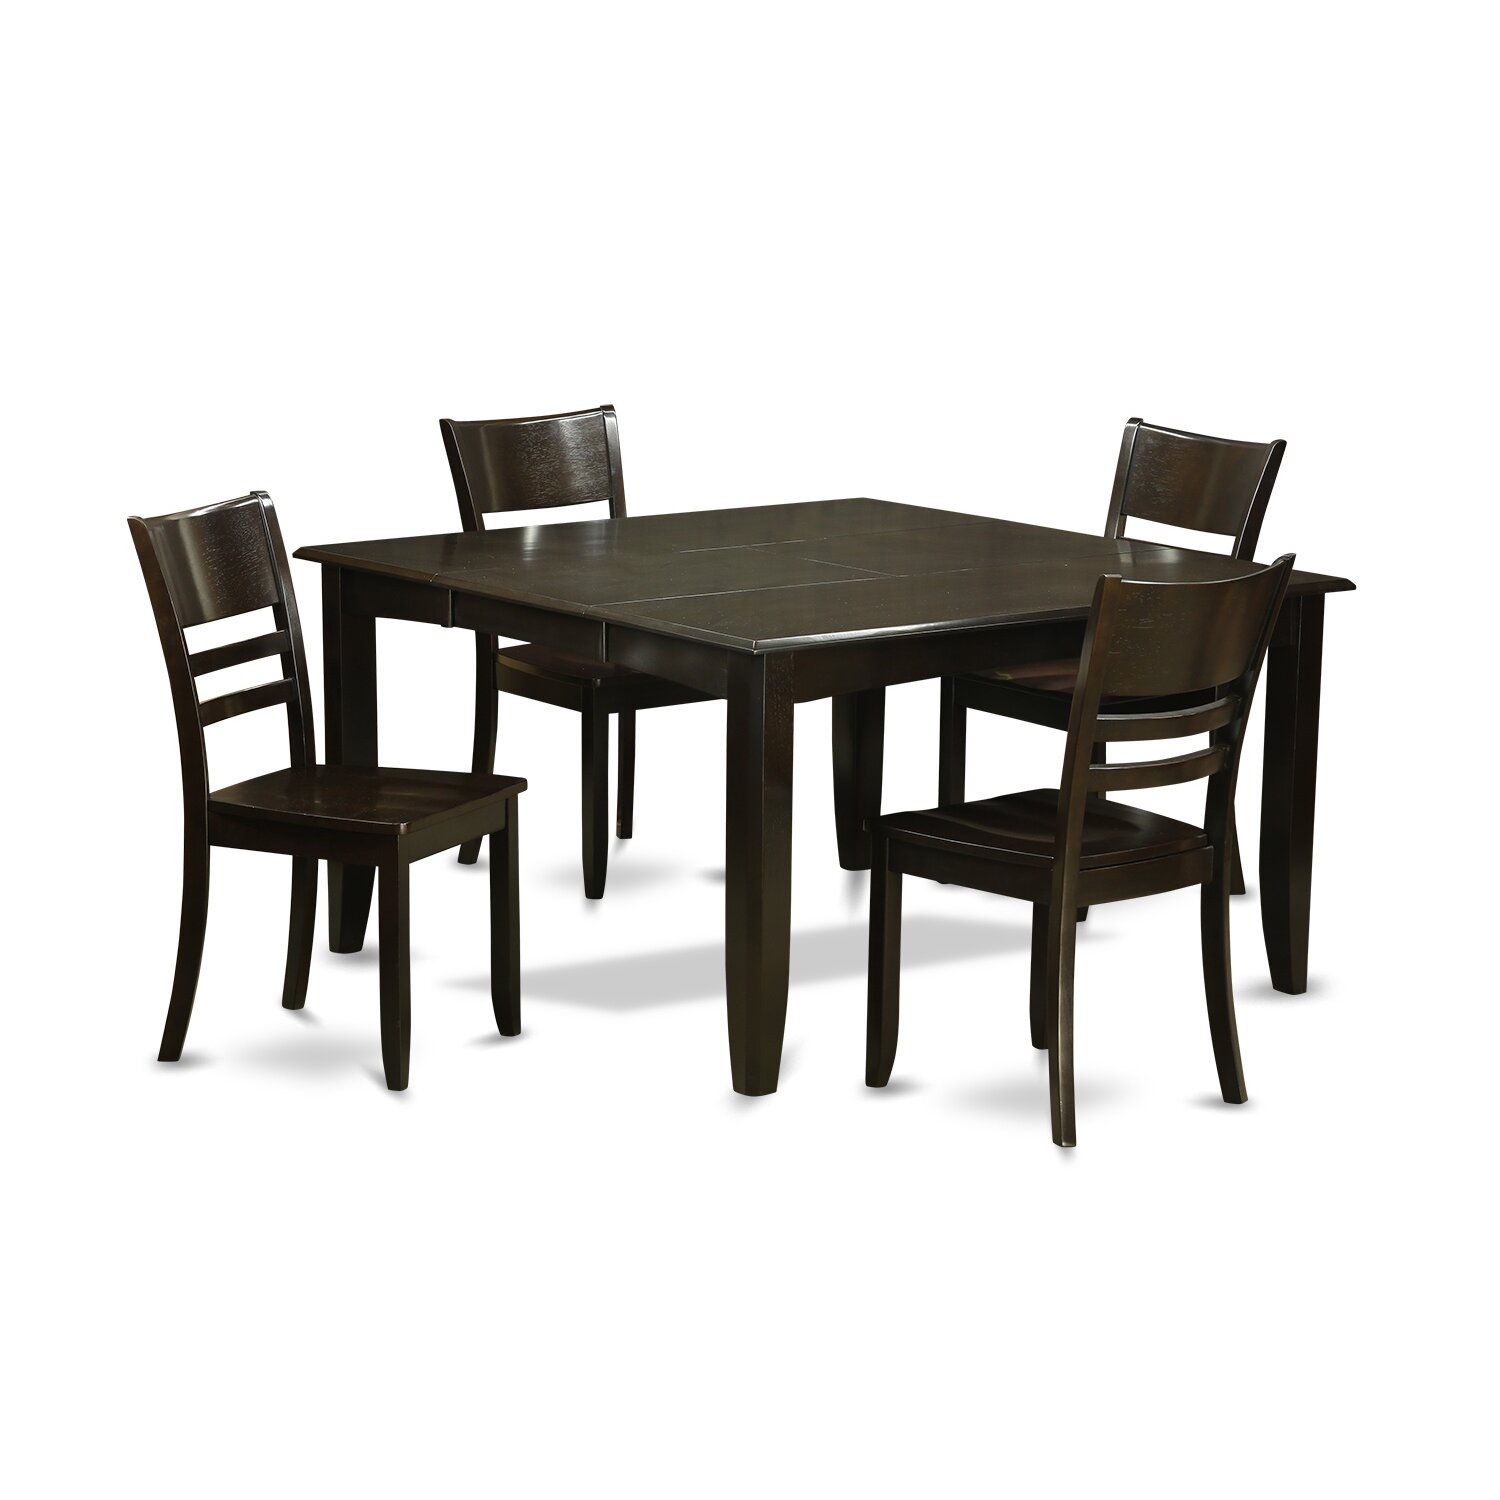 Wooden importers parfait 5 piece dining set wayfair for 5 piece dining set